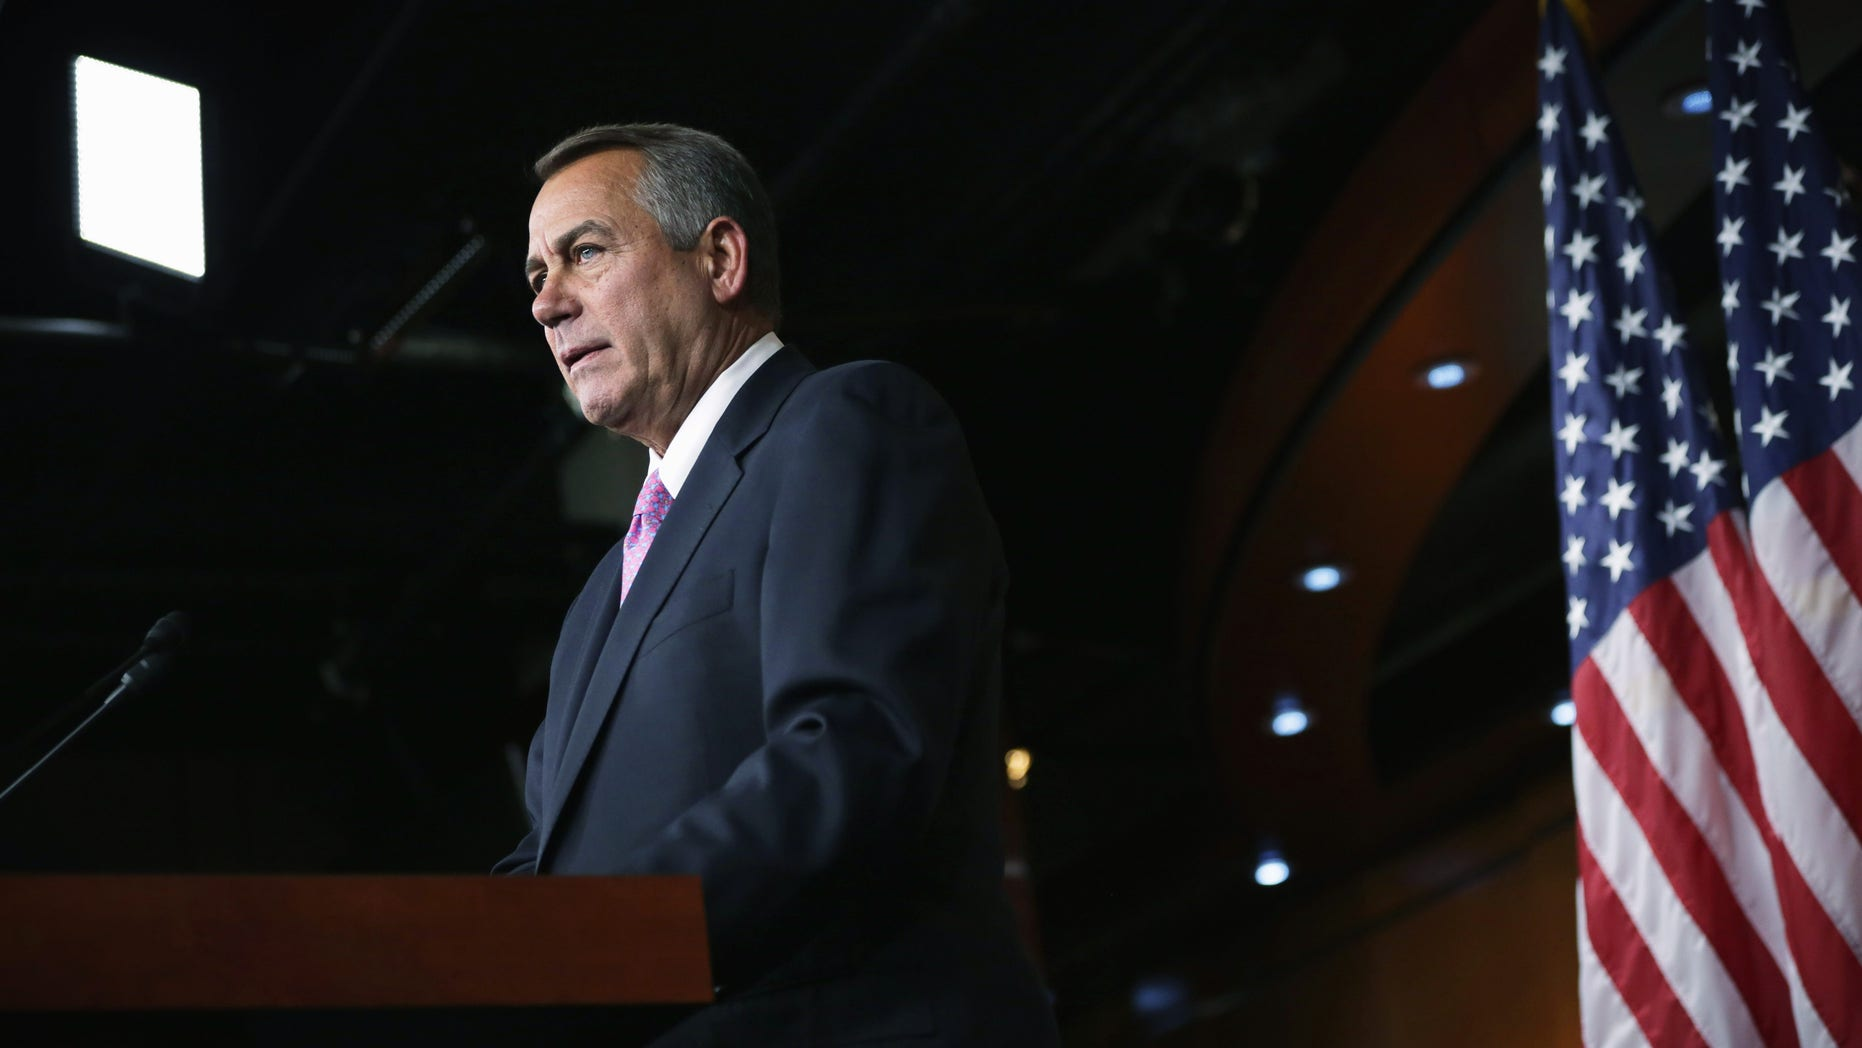 WASHINGTON, DC - FEBRUARY 06:  U.S. Speaker of the House Rep. John Boehner (R-OH) speaks during his weekly news conference February 6, 2014 on Capitol Hill in Washington, DC. Speaker Boehner discussed Republican agenda with members of the media at the news conference. (Photo by Alex Wong/Getty Images)